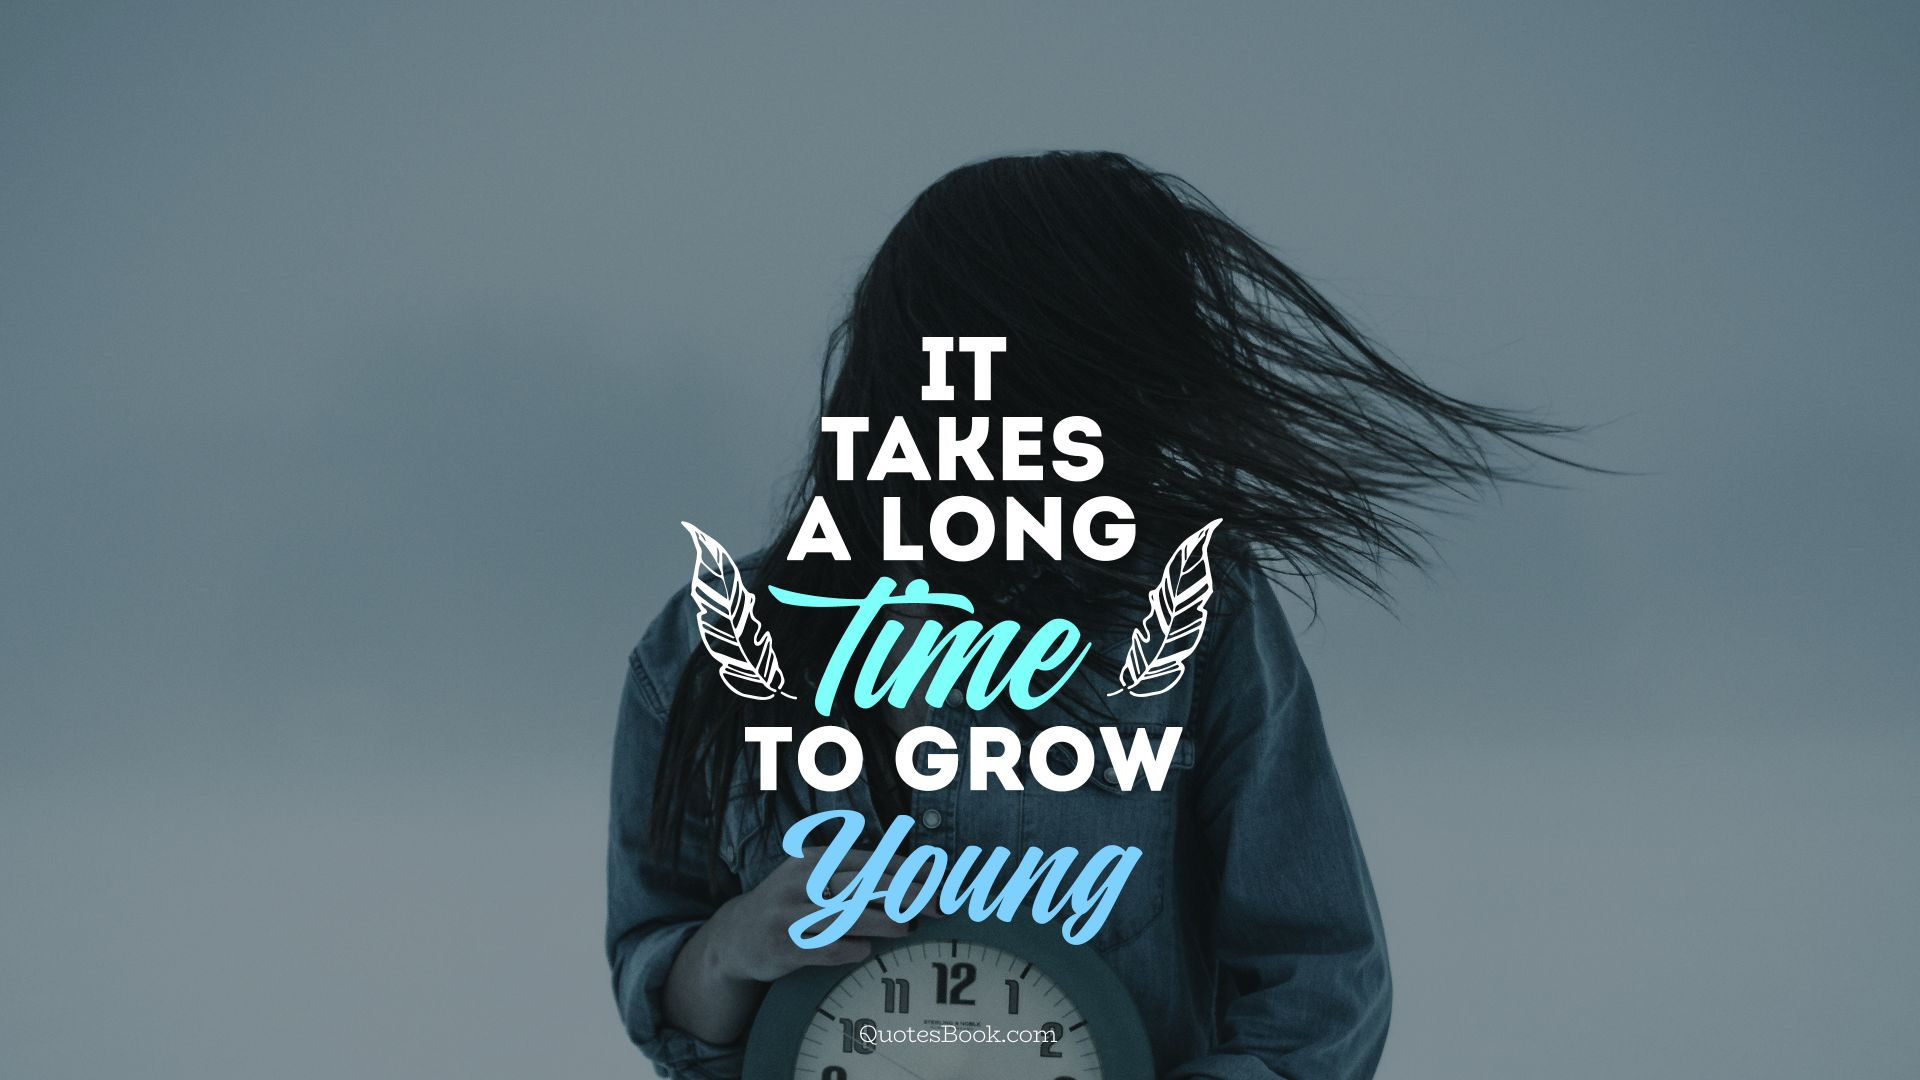 It takes a long time to grow young